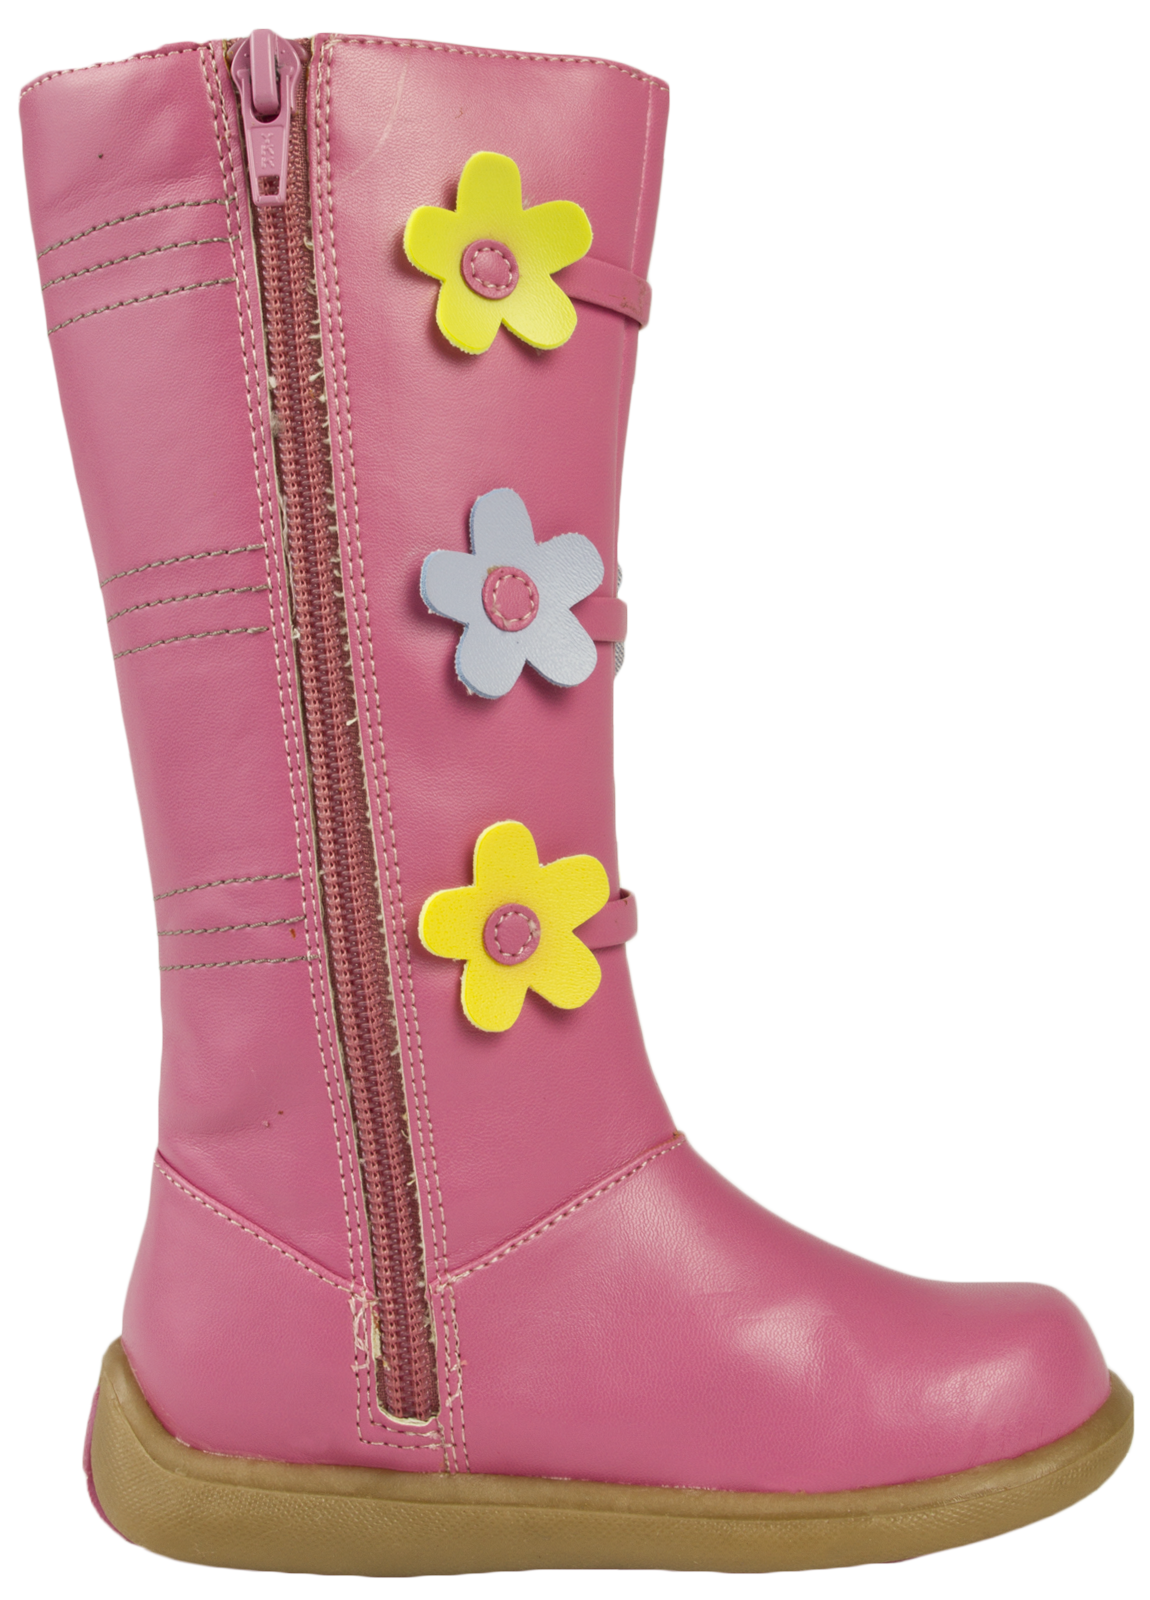 Girls fifi and the flowertots knee high boots faux leather pink girls fifi and the flowertots knee high boots mightylinksfo